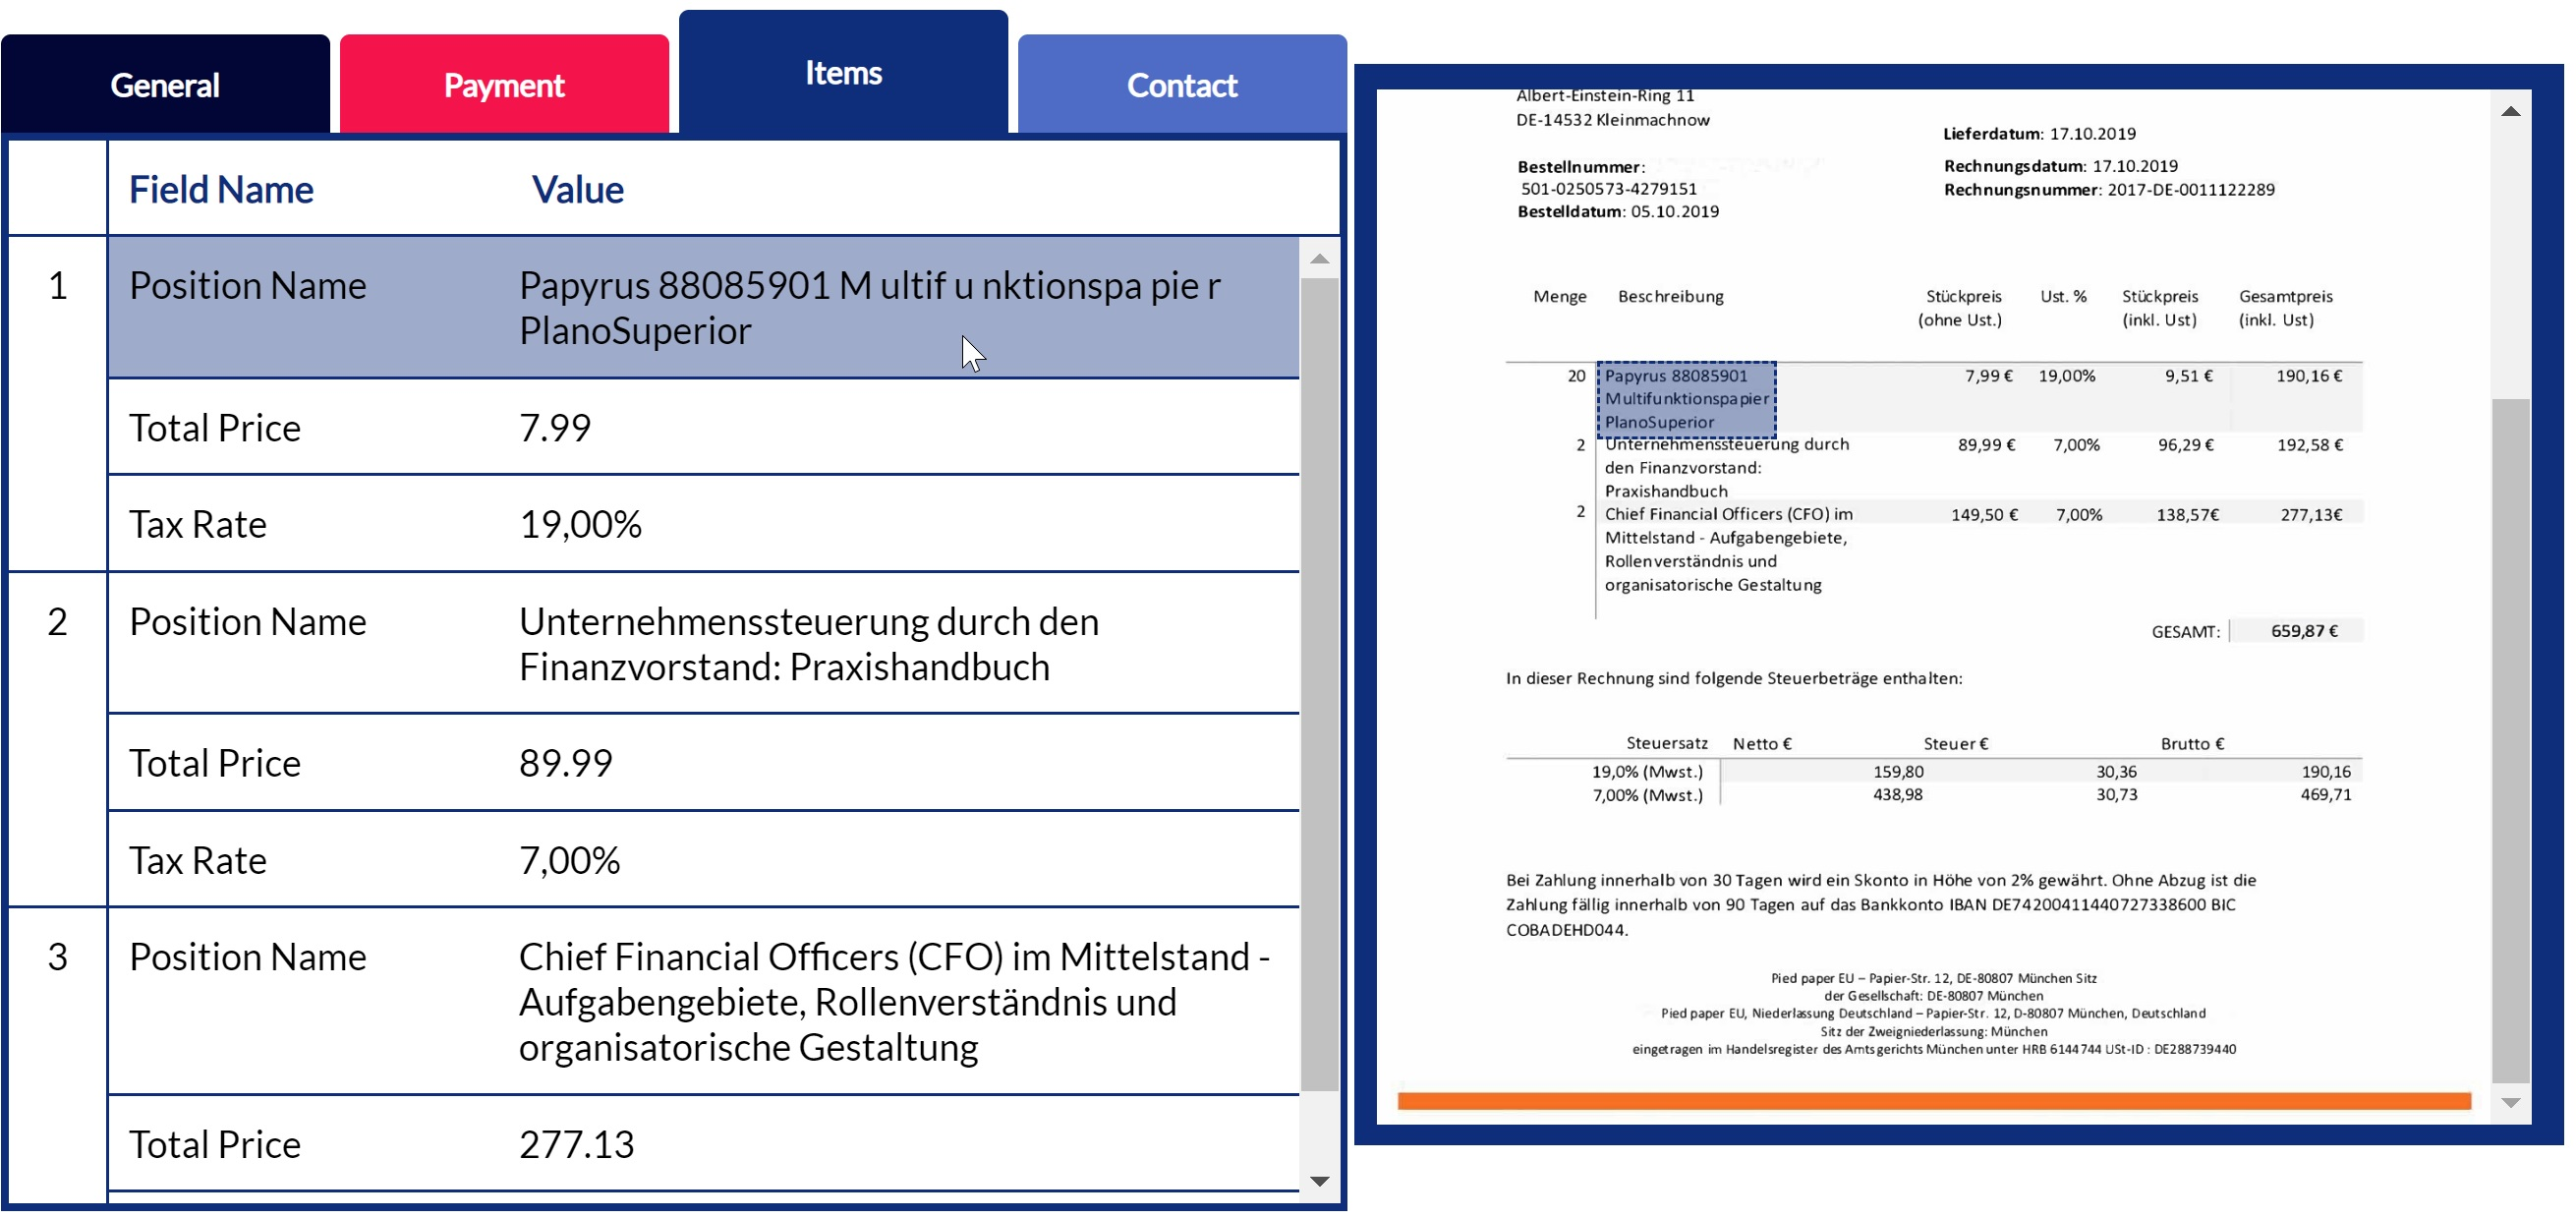 Capturing invoice details using OCR technology in Hypatos